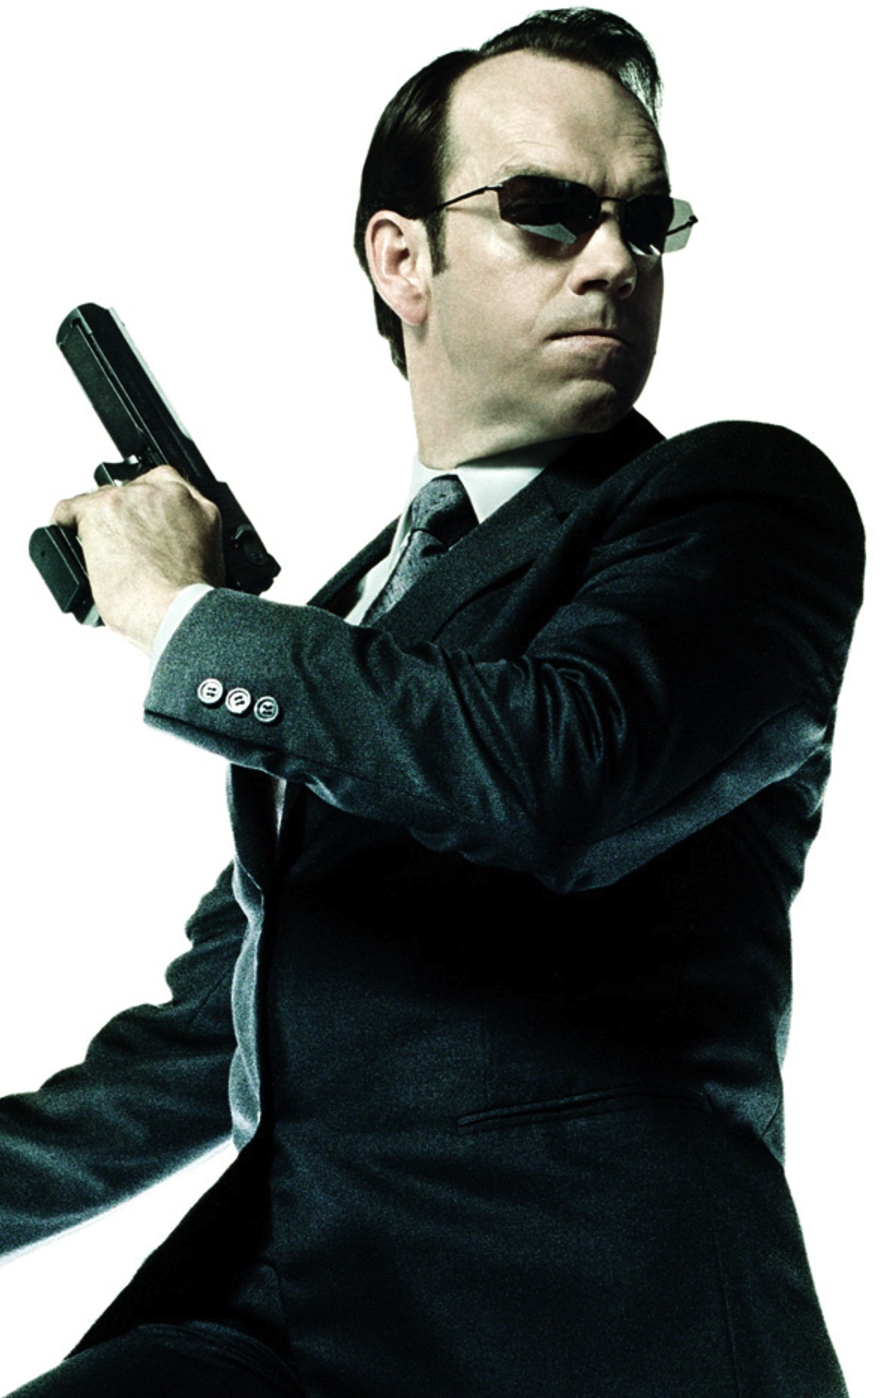 Captivating Agent Smith The Matrix Movie Hd Wallpaper 2880x1800 4710.png